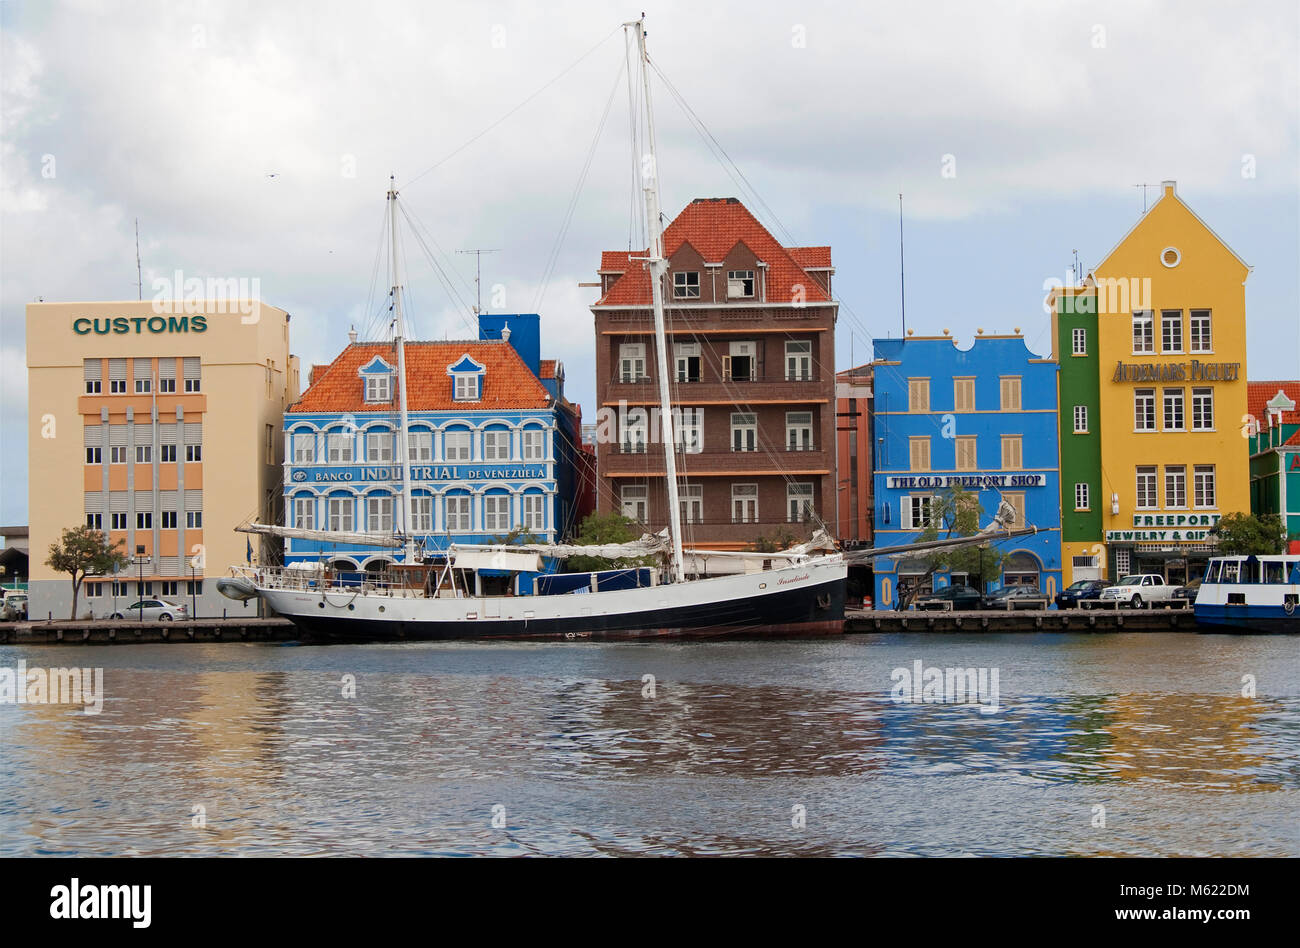 Sailing ship (brigantine) at trade arcade, historical colonial buildings, Punda district, Willemstad, Curacao, Netherlands - Stock Image